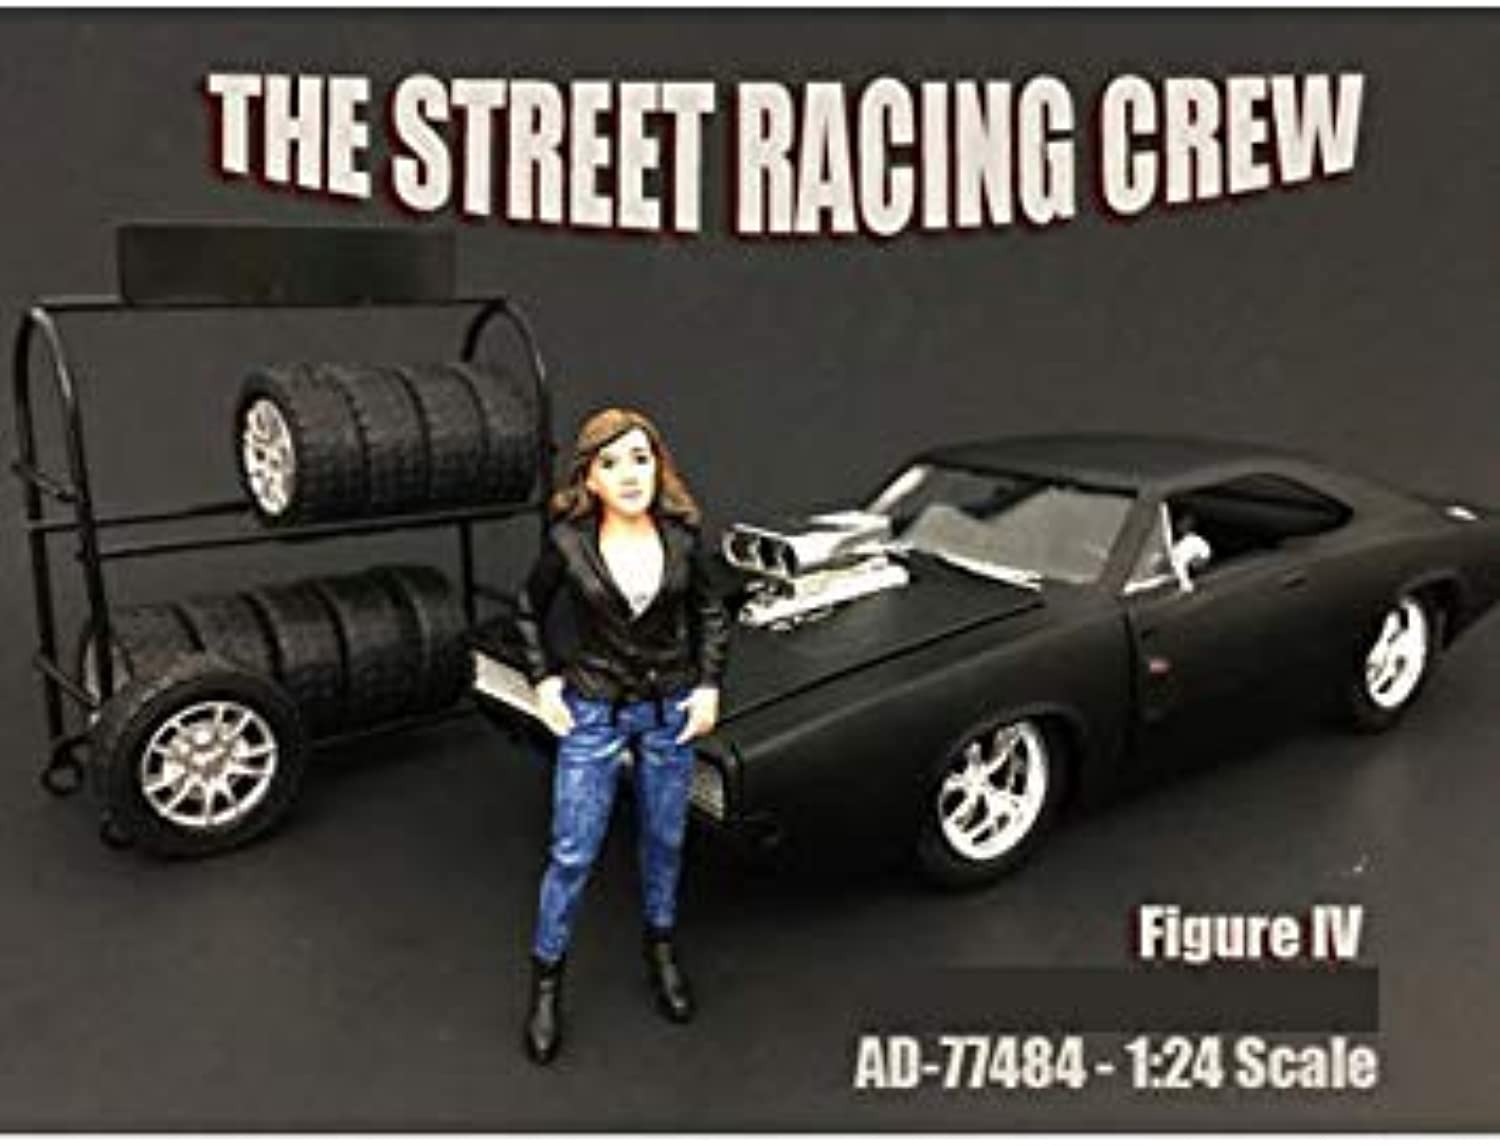 American Diorama Street Racing Crew Figure 477484 1 24 Scale Diecast Model Toy Car